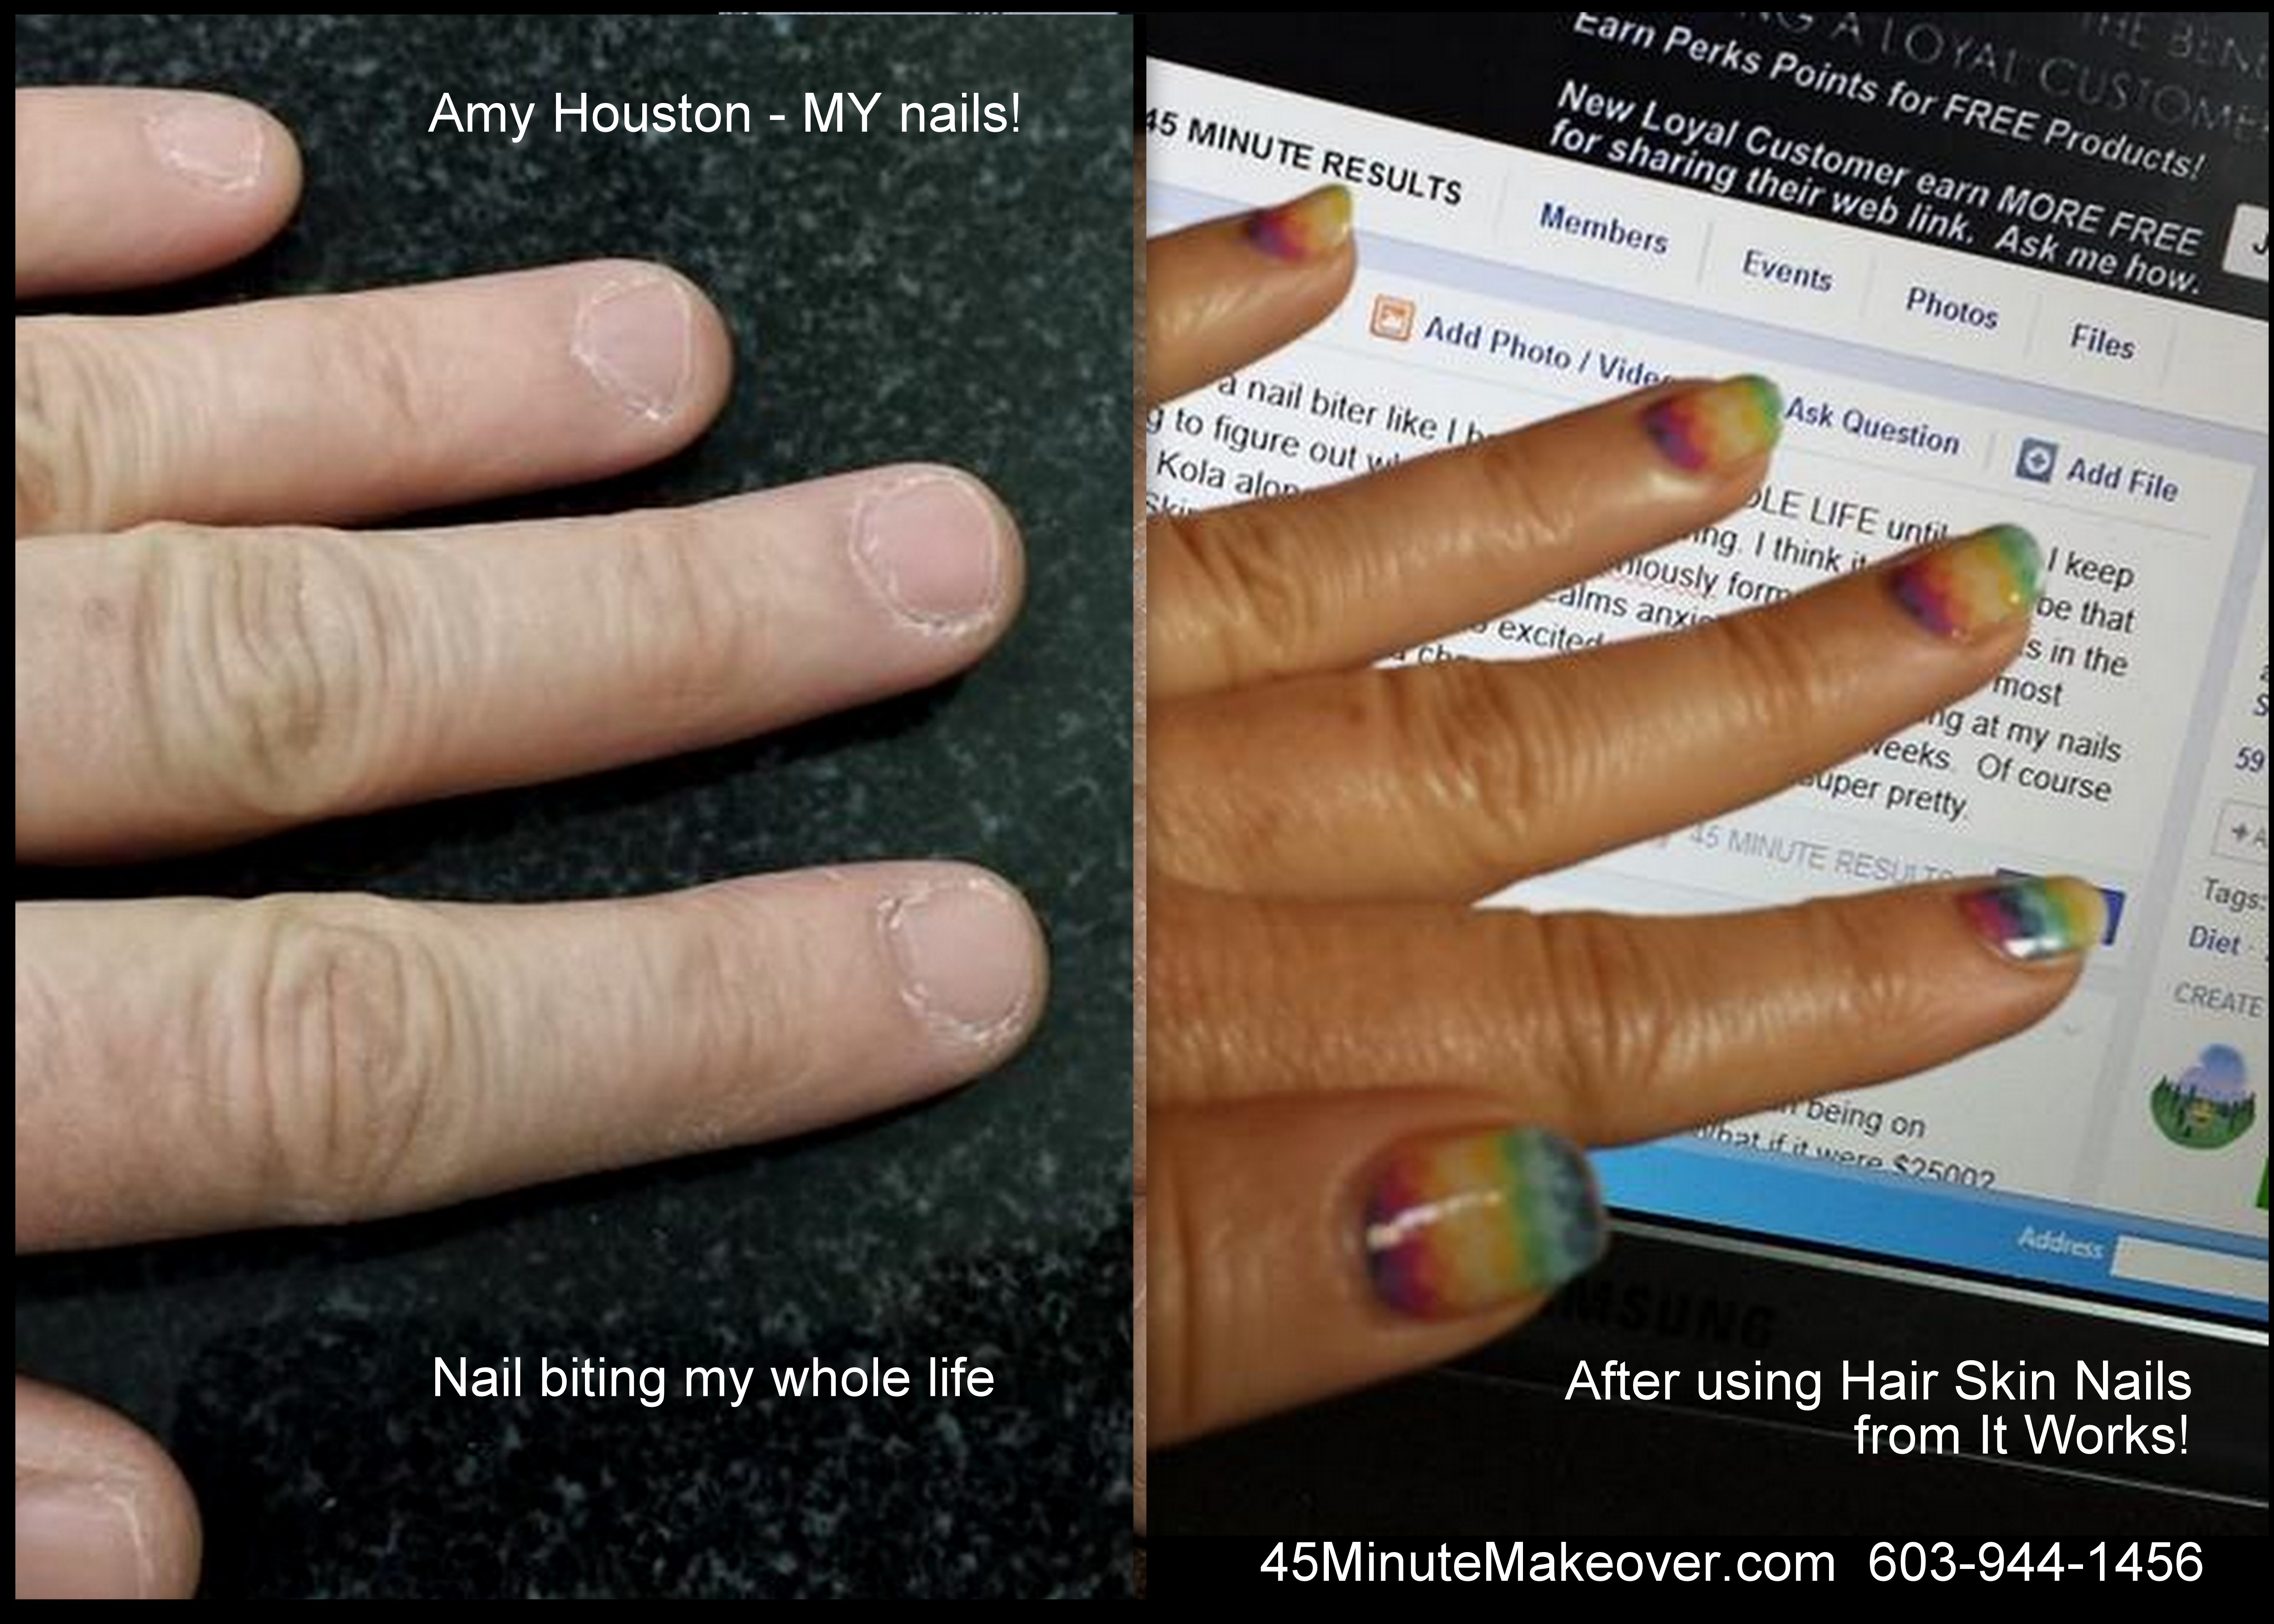 Finger Nail | 45 Minute Makeover - DIY Body Wraps, Nutrition, Skin Care